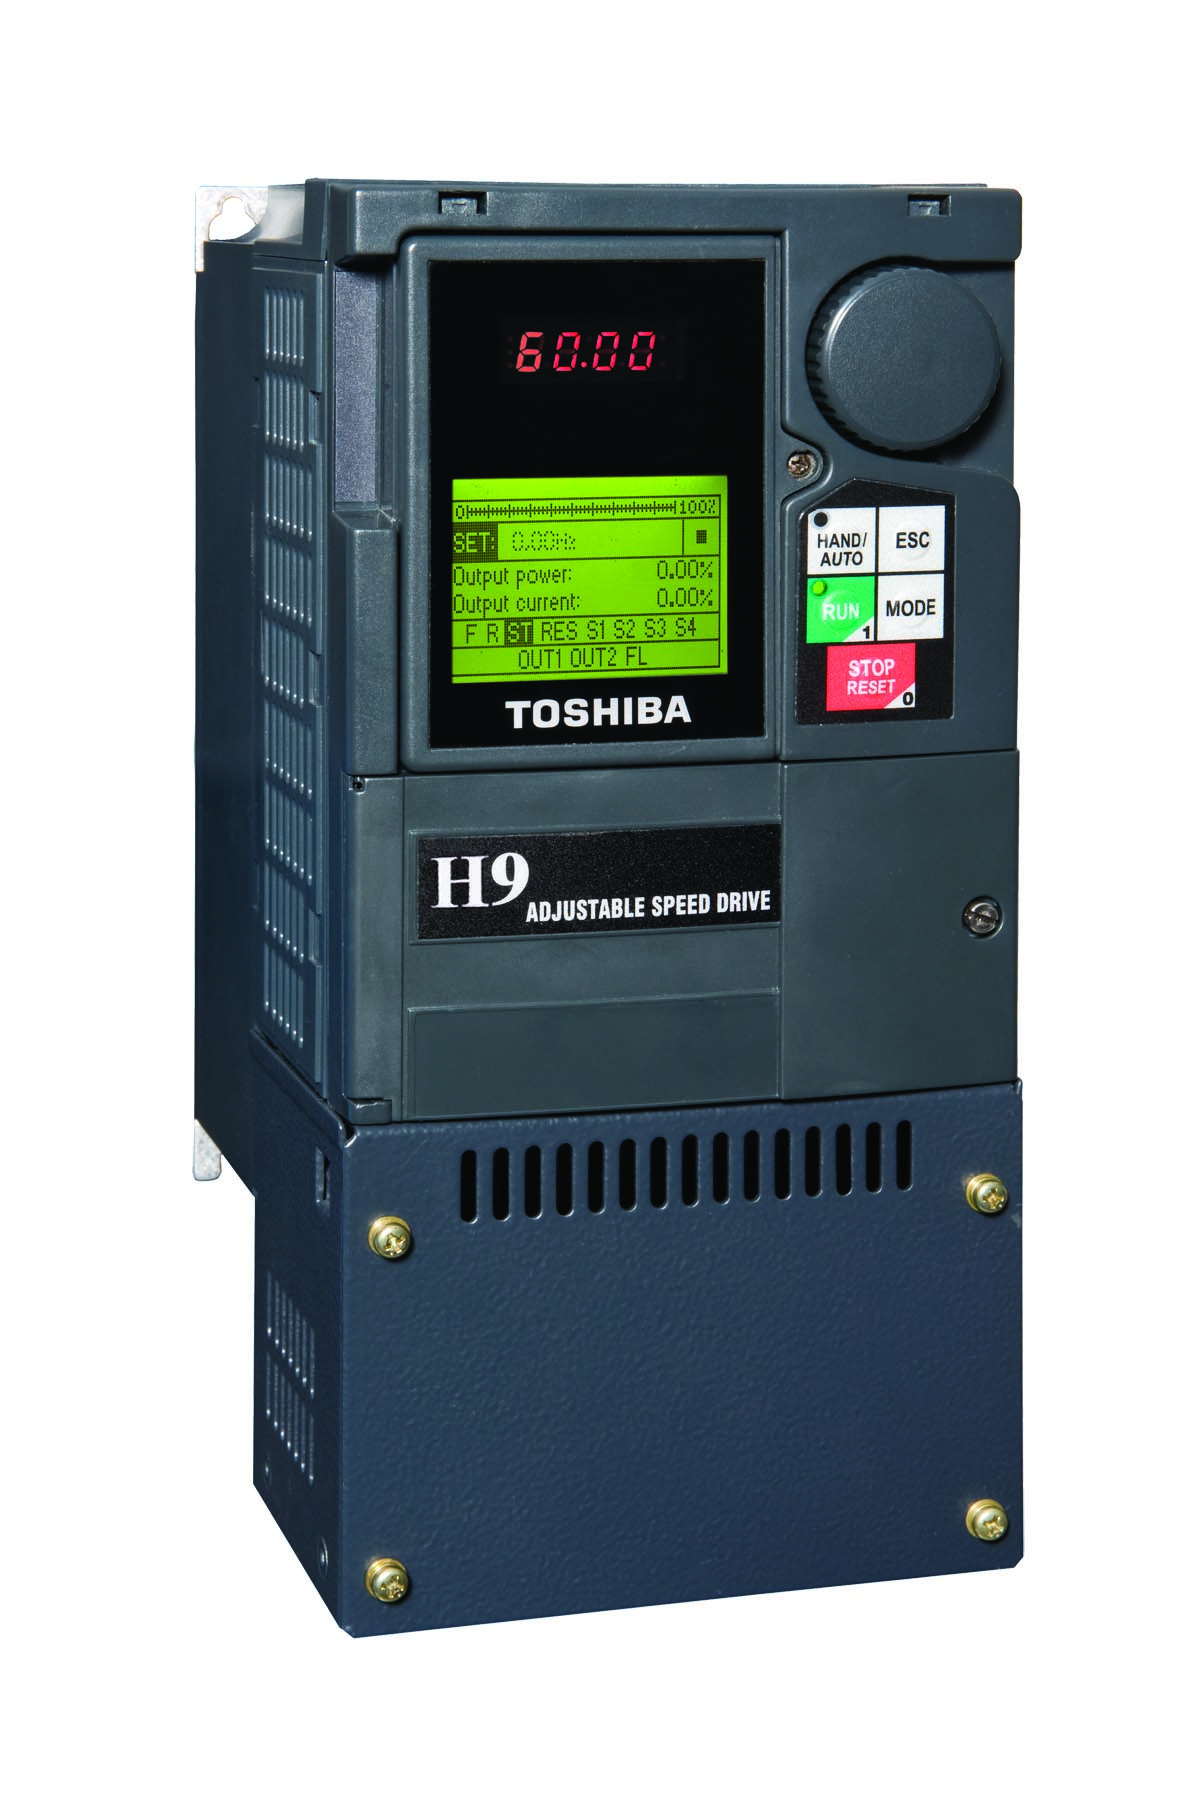 h9 heavy duty general purpose motors drives toshiba rh toshiba com 1969 VW Electrical Manual Electrical Manuals BBC